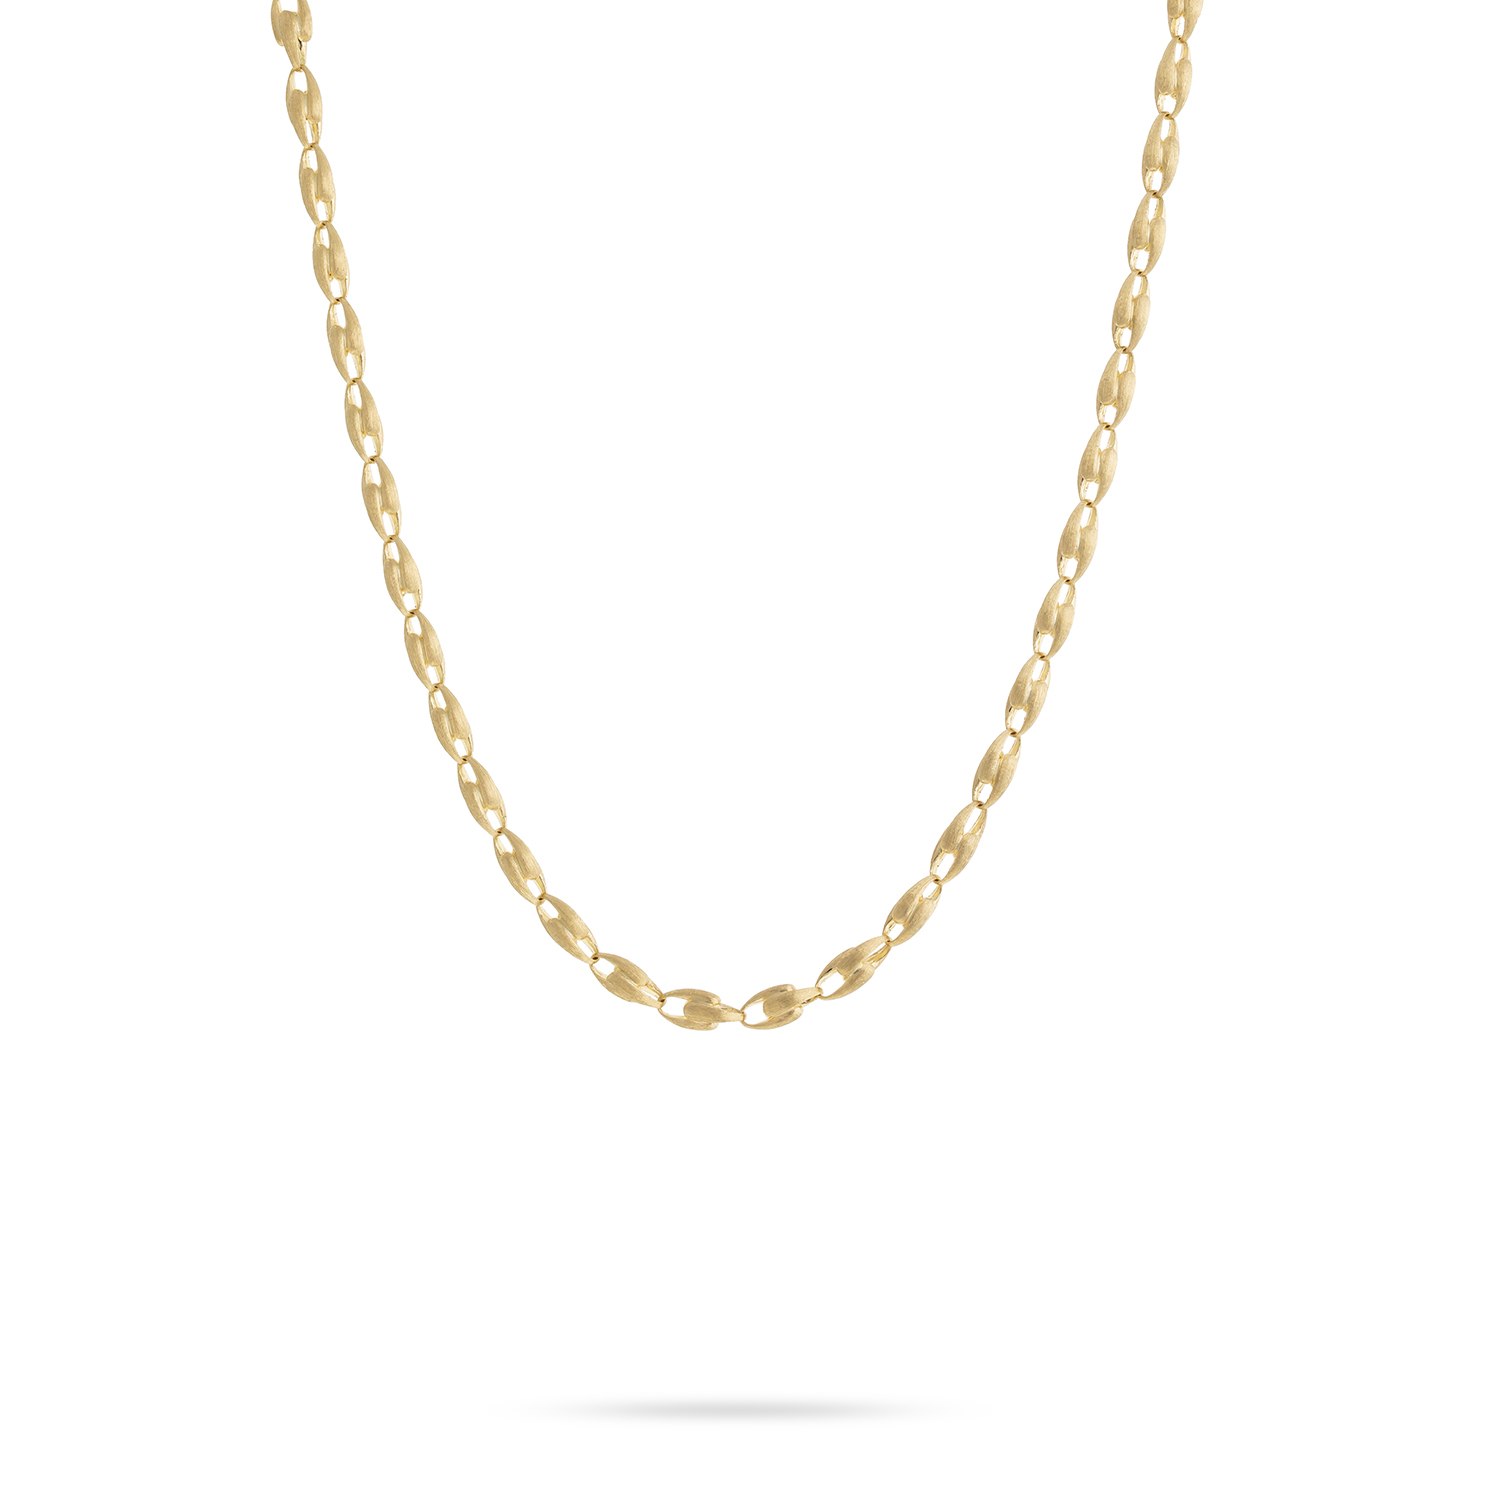 Marco Bicego 18K Yellow Gold    Gold Necklace CB2361 Y